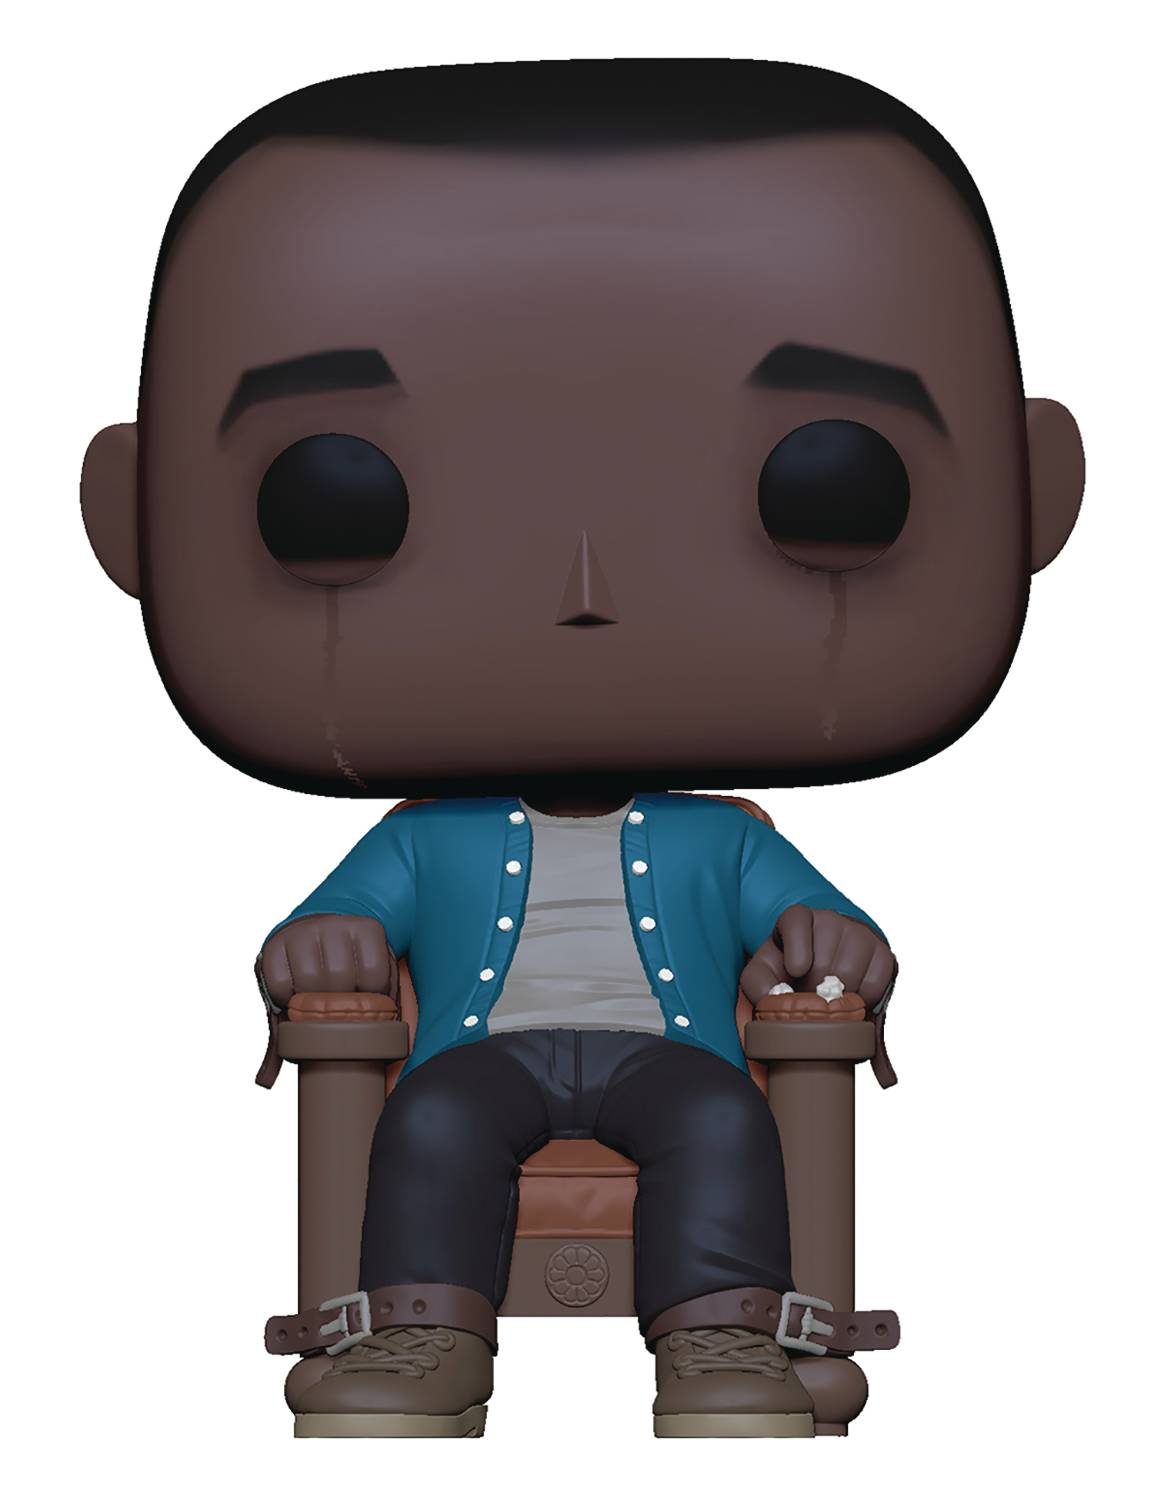 POP MOVIES GET OUT CHRIS HYPNOSIS VIN FIGURE